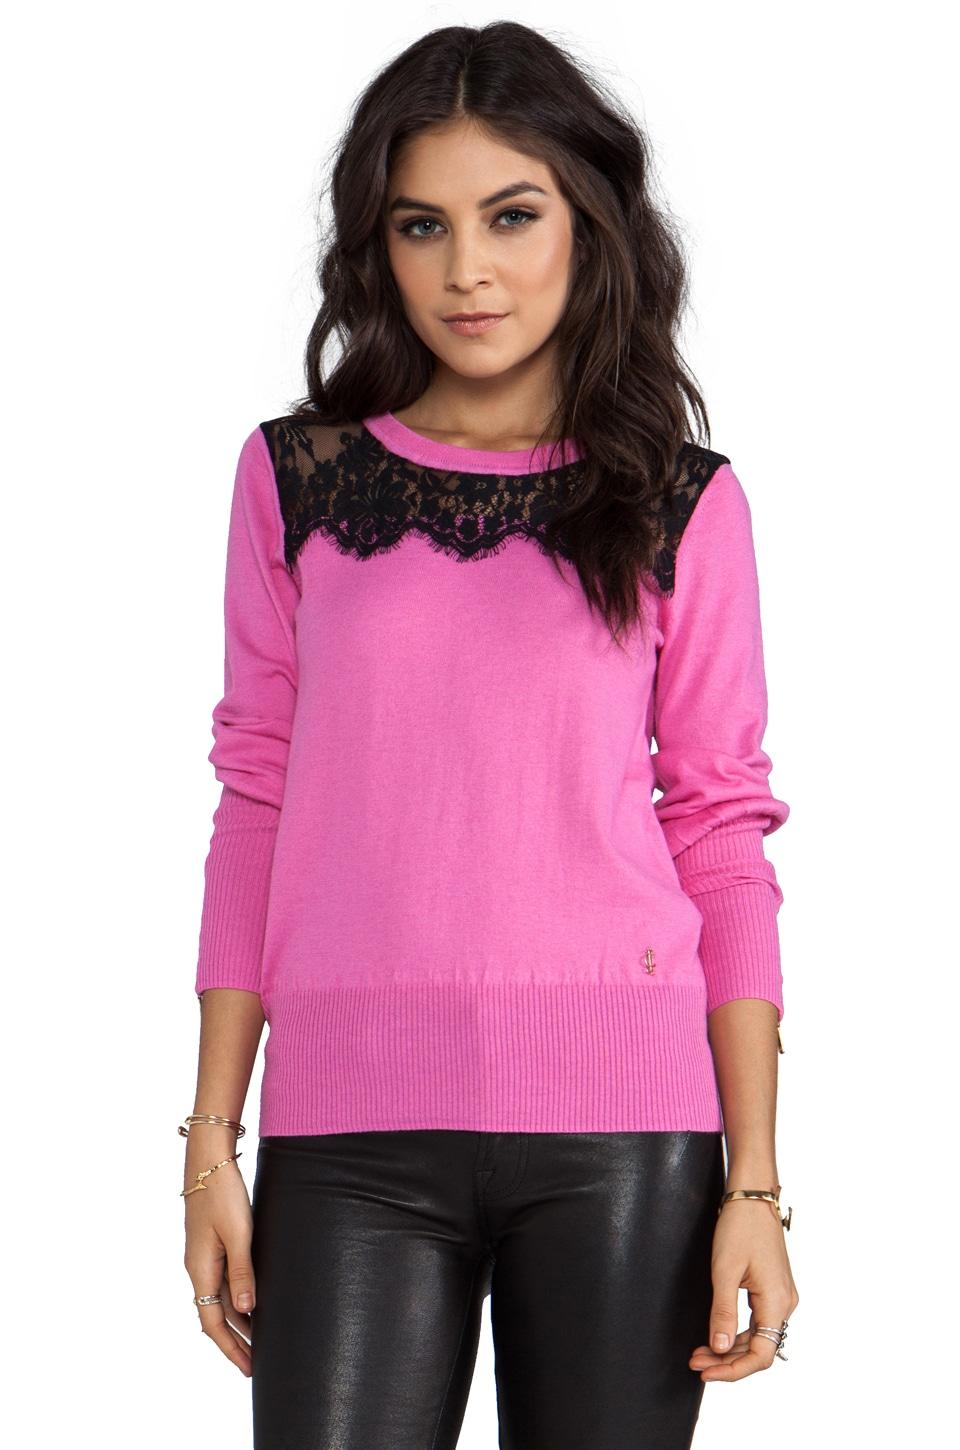 Juicy Couture Nicola Pullover in Fragrant Rose